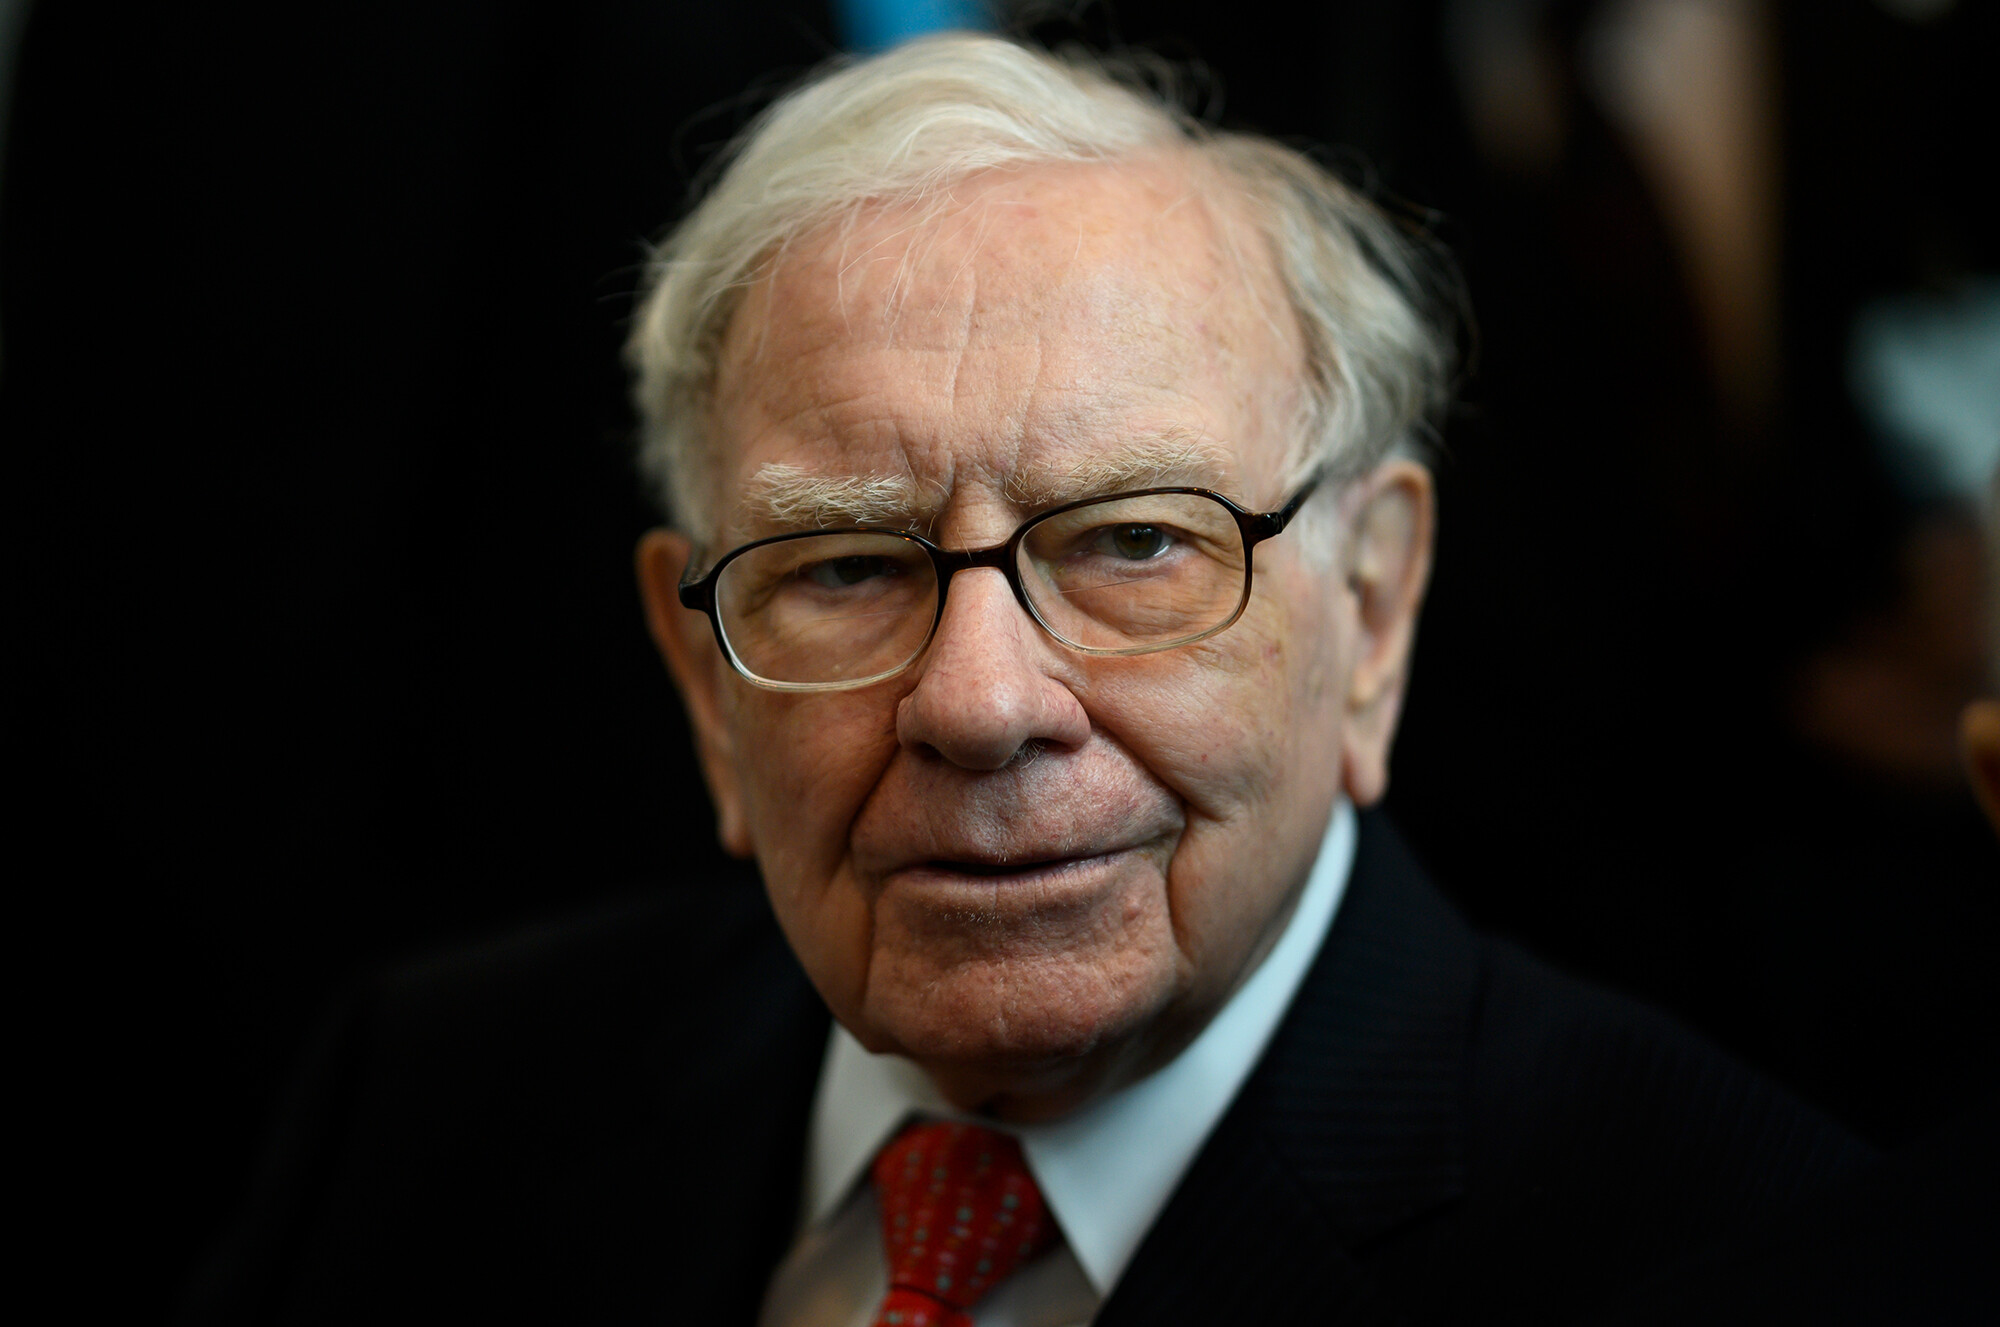 Berkshire Hathaway scraps pipeline purchase because of antitrust concerns